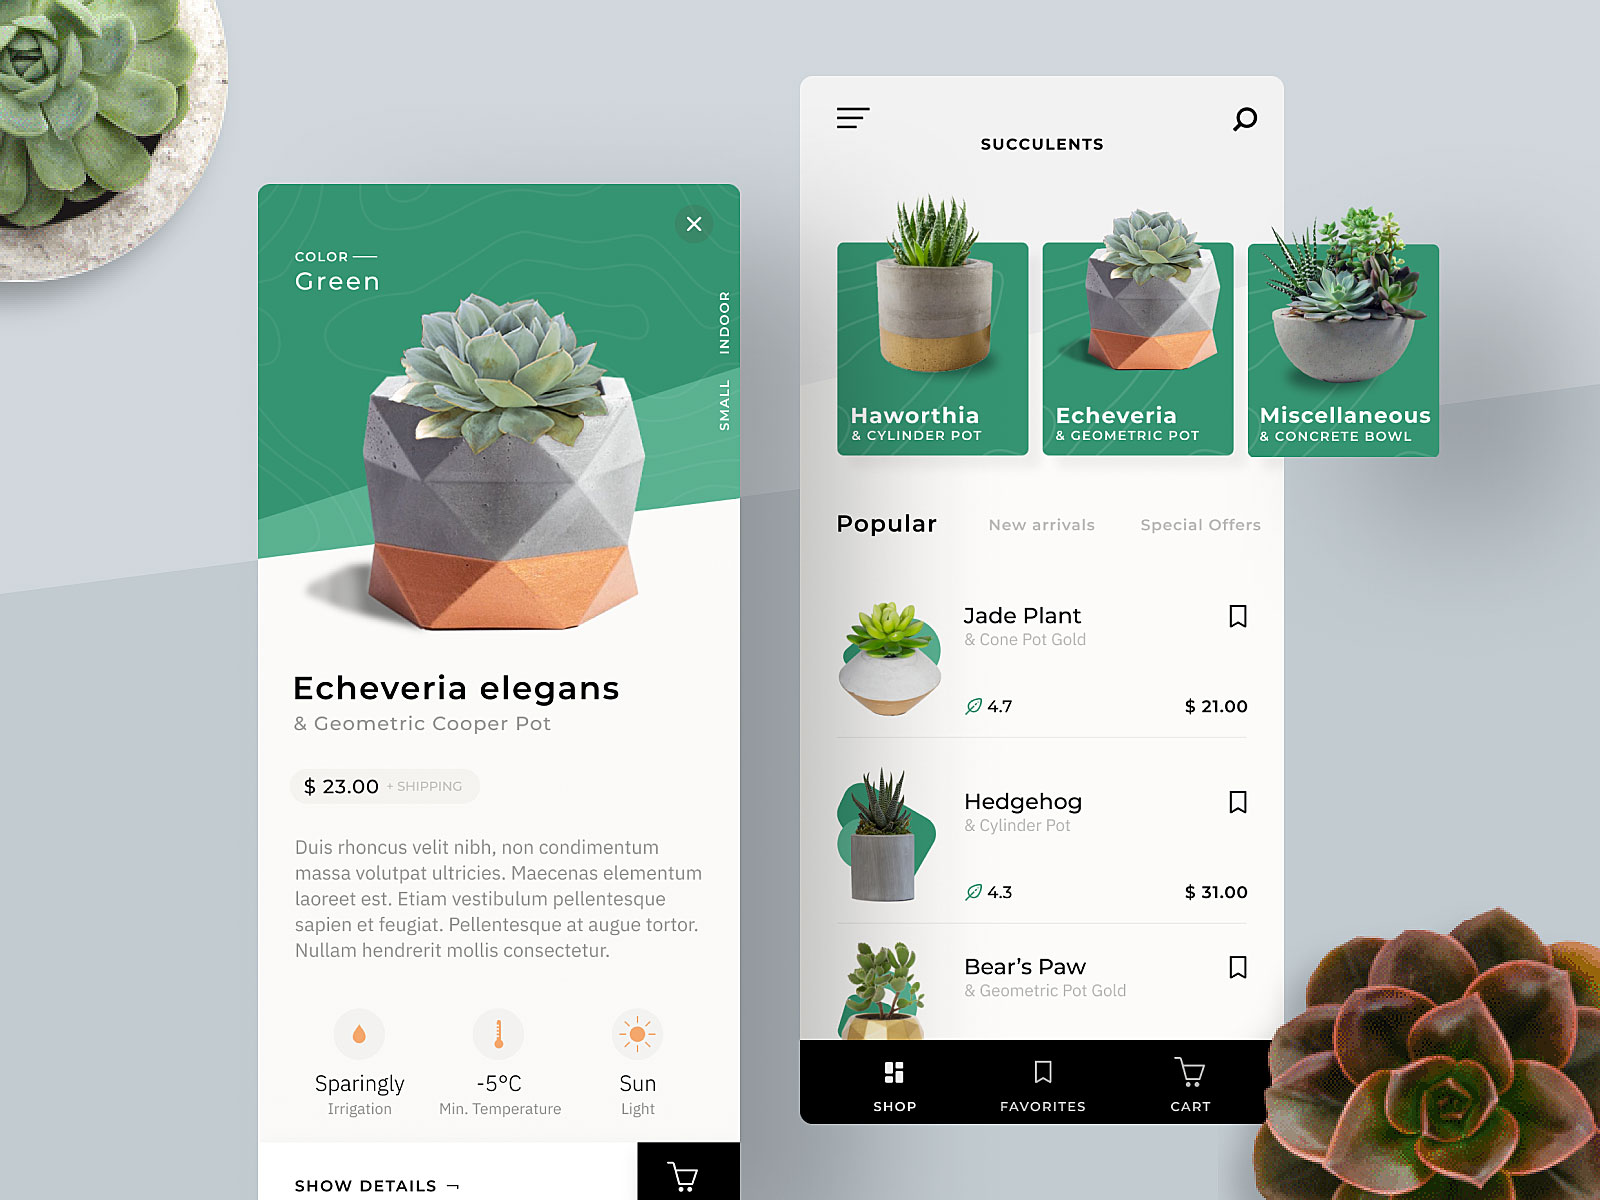 Find more of my current work on dribbble.